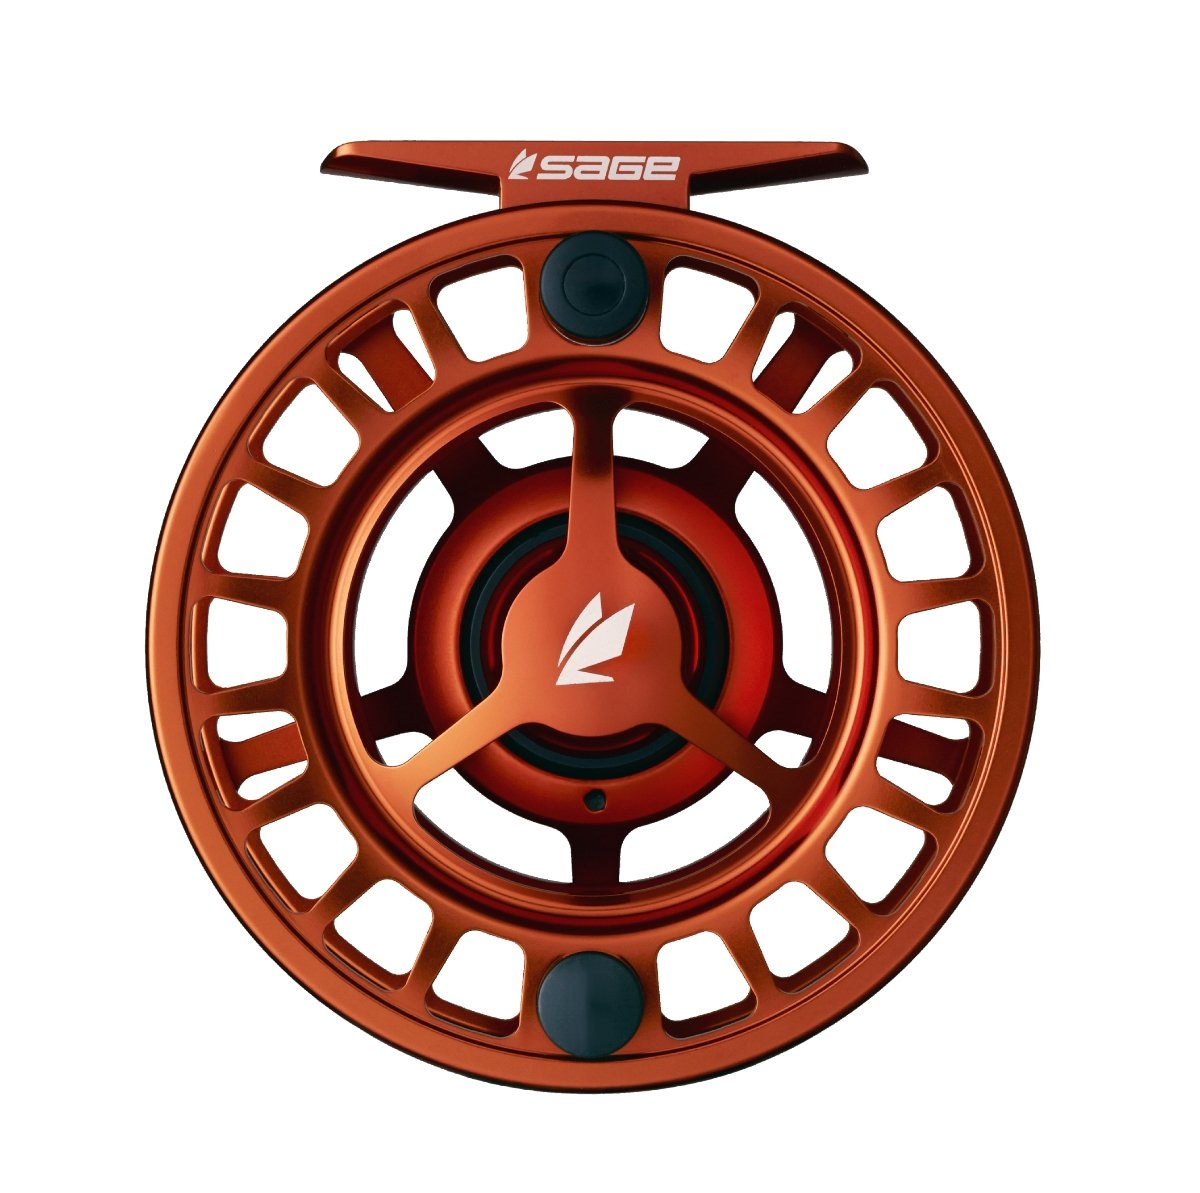 大きな割引 セージSpectrum Fly Fishing Reel B074XH11CR B074XH11CR 3-4 Wt.|ブレーズ(Blaze) ブレーズ(Blaze) Fly 3-4 Fishing Wt., 大垣市:c1669e6c --- arianechie.dominiotemporario.com